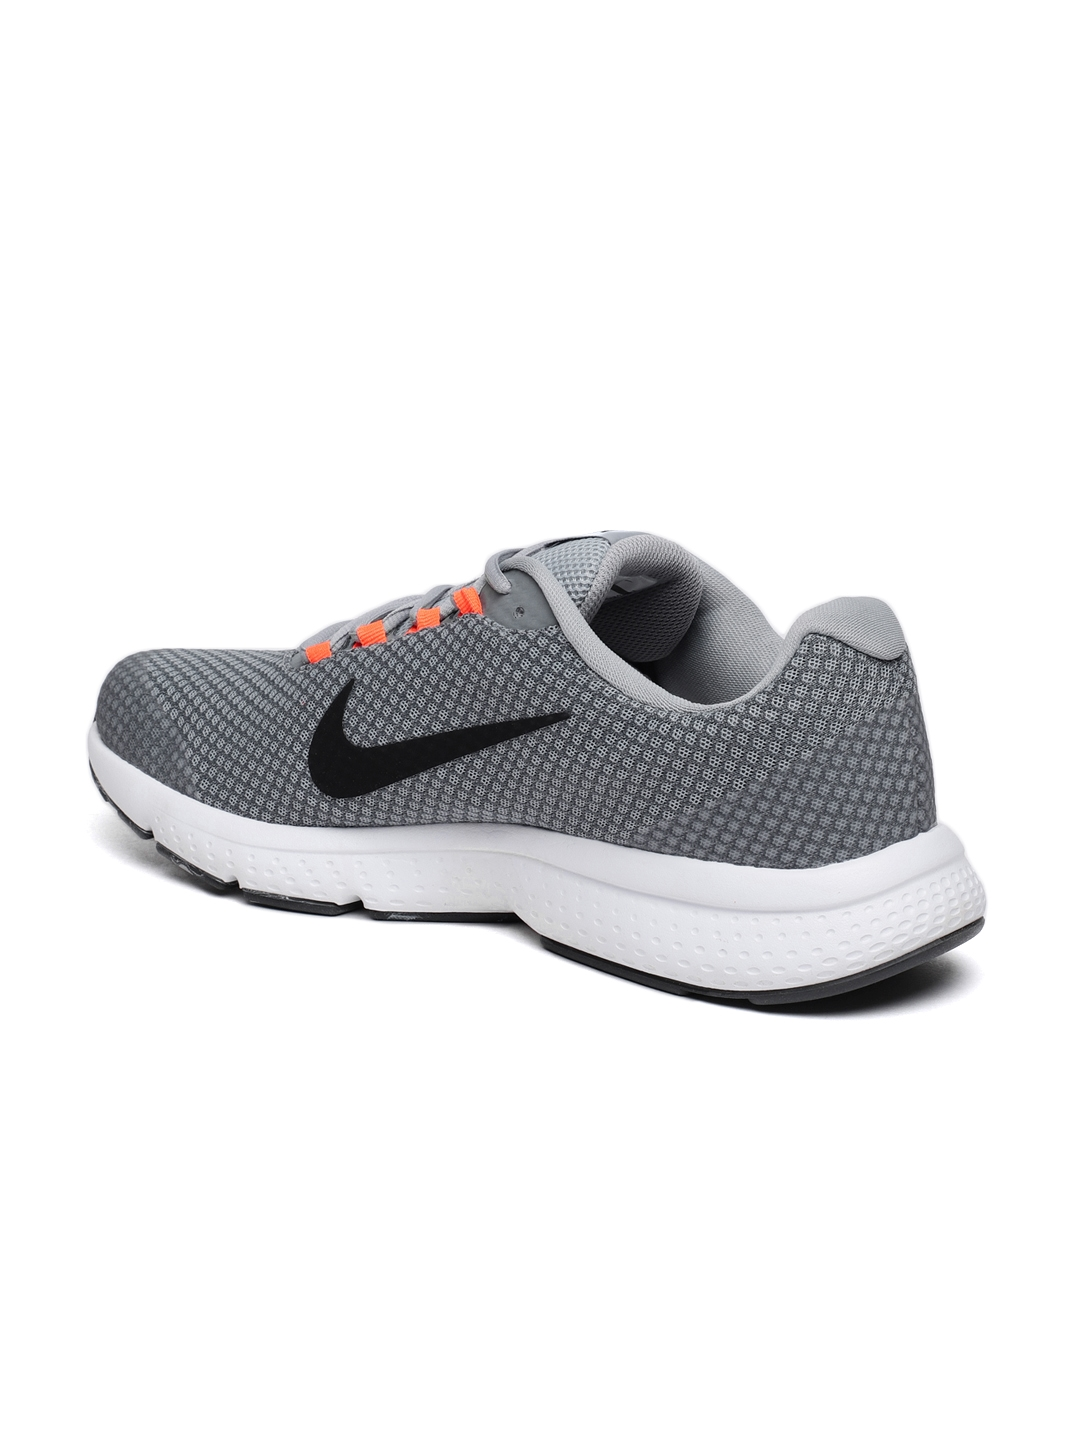 0828900c2c9 Buy Nike Men Grey RunAllDay Running Shoe - Sports Shoes for Men ...